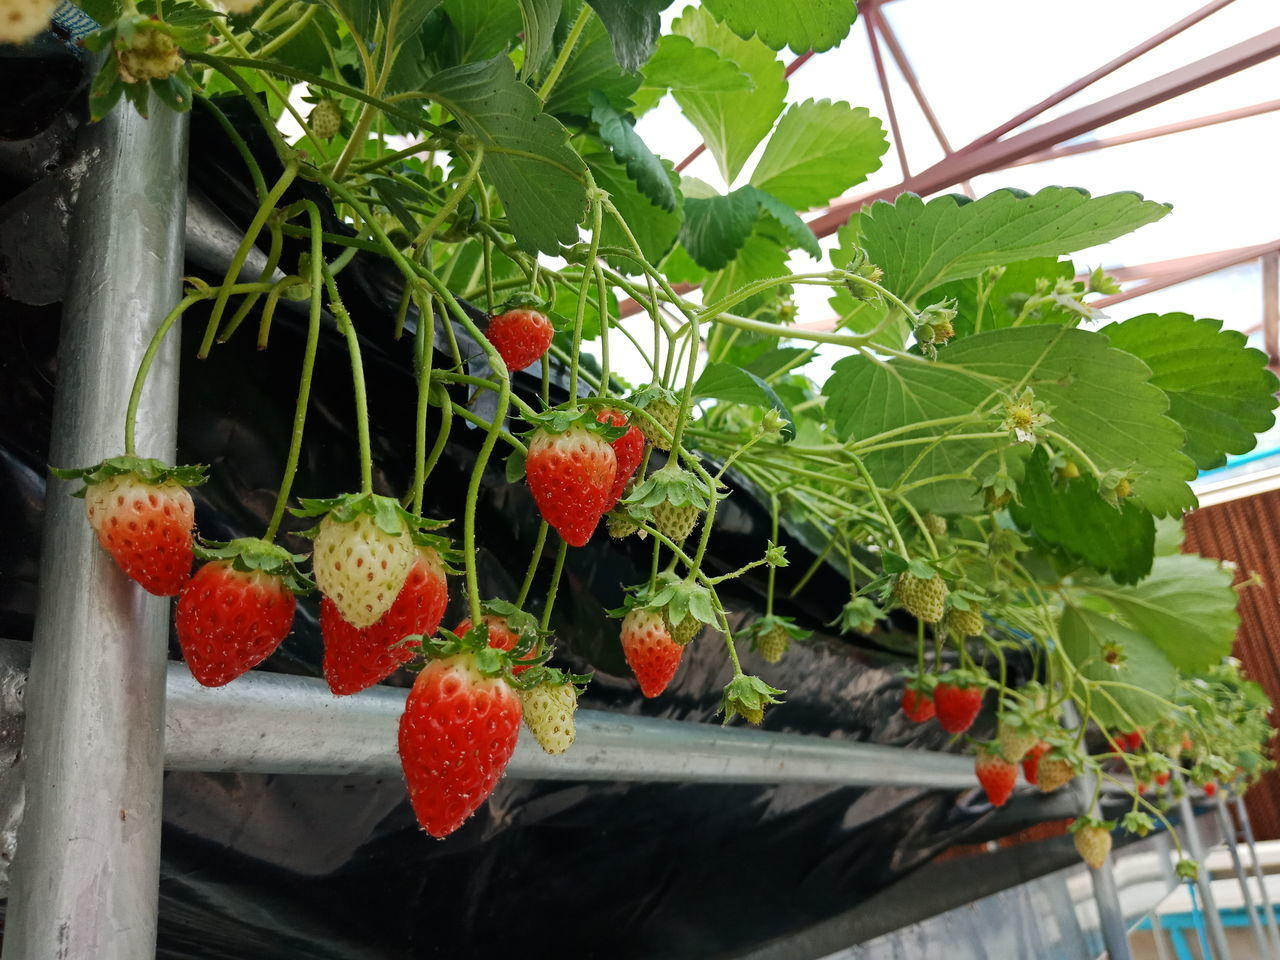 healthy eating, plant, freshness, food and drink, fruit, growth, plant part, leaf, food, wellbeing, no people, day, green color, nature, berry fruit, red, potted plant, close-up, strawberry, outdoors, ripe, flower pot